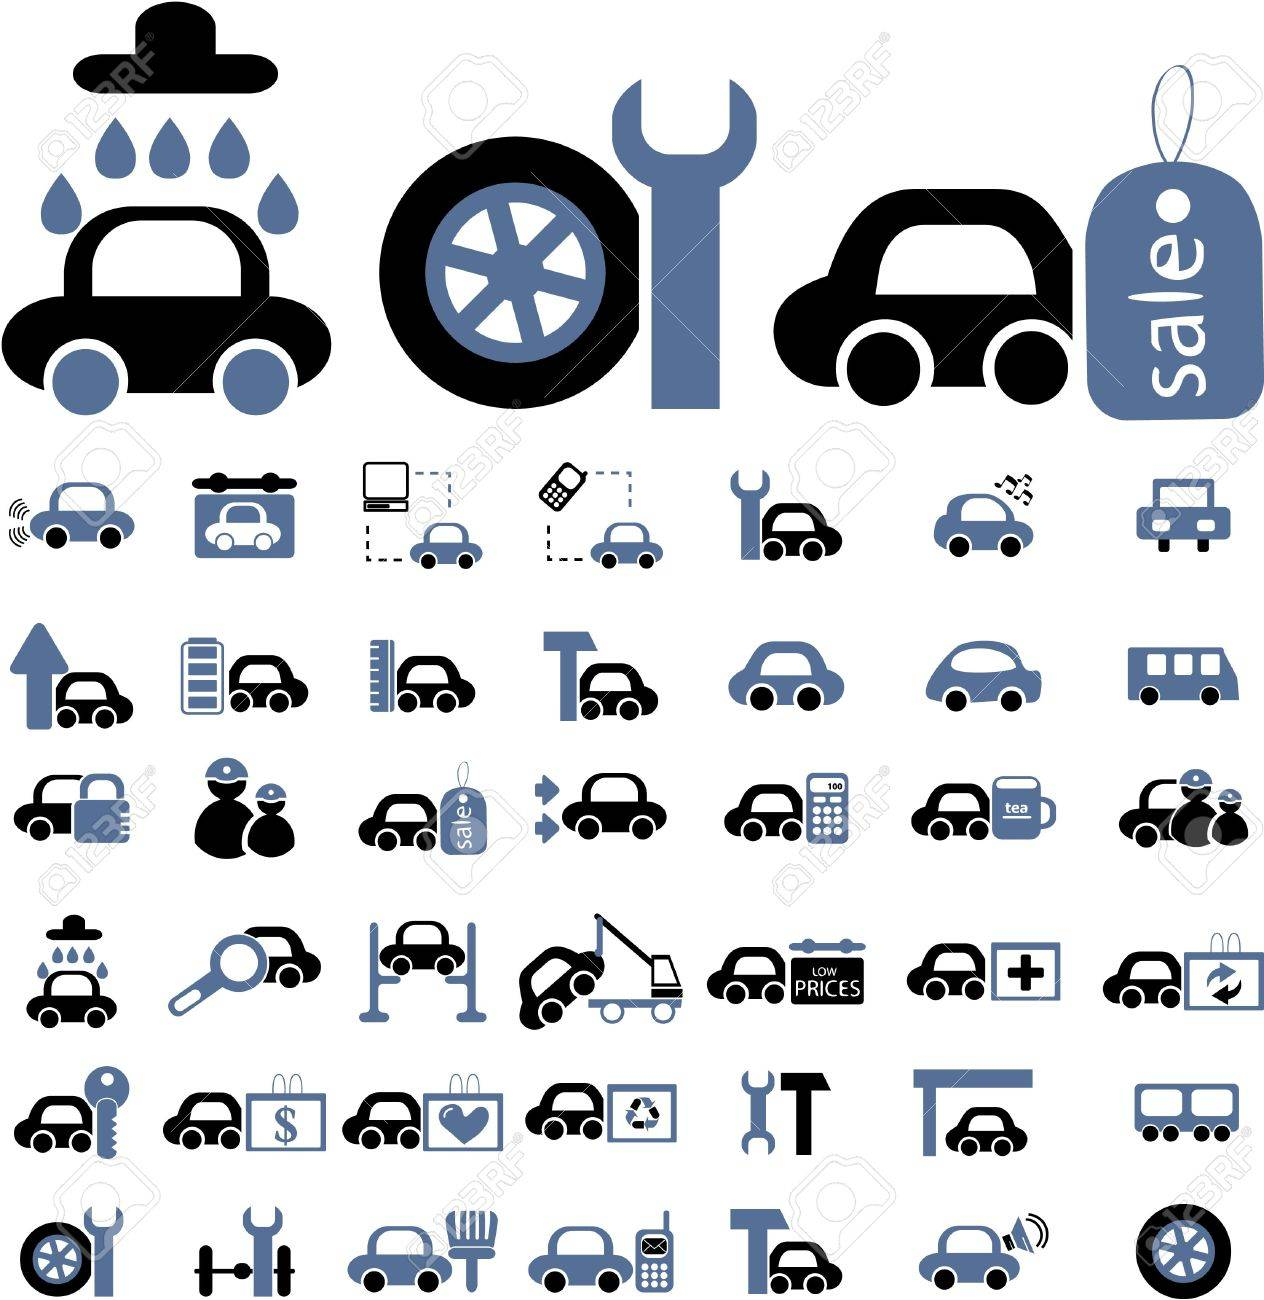 cars signs - 8904655